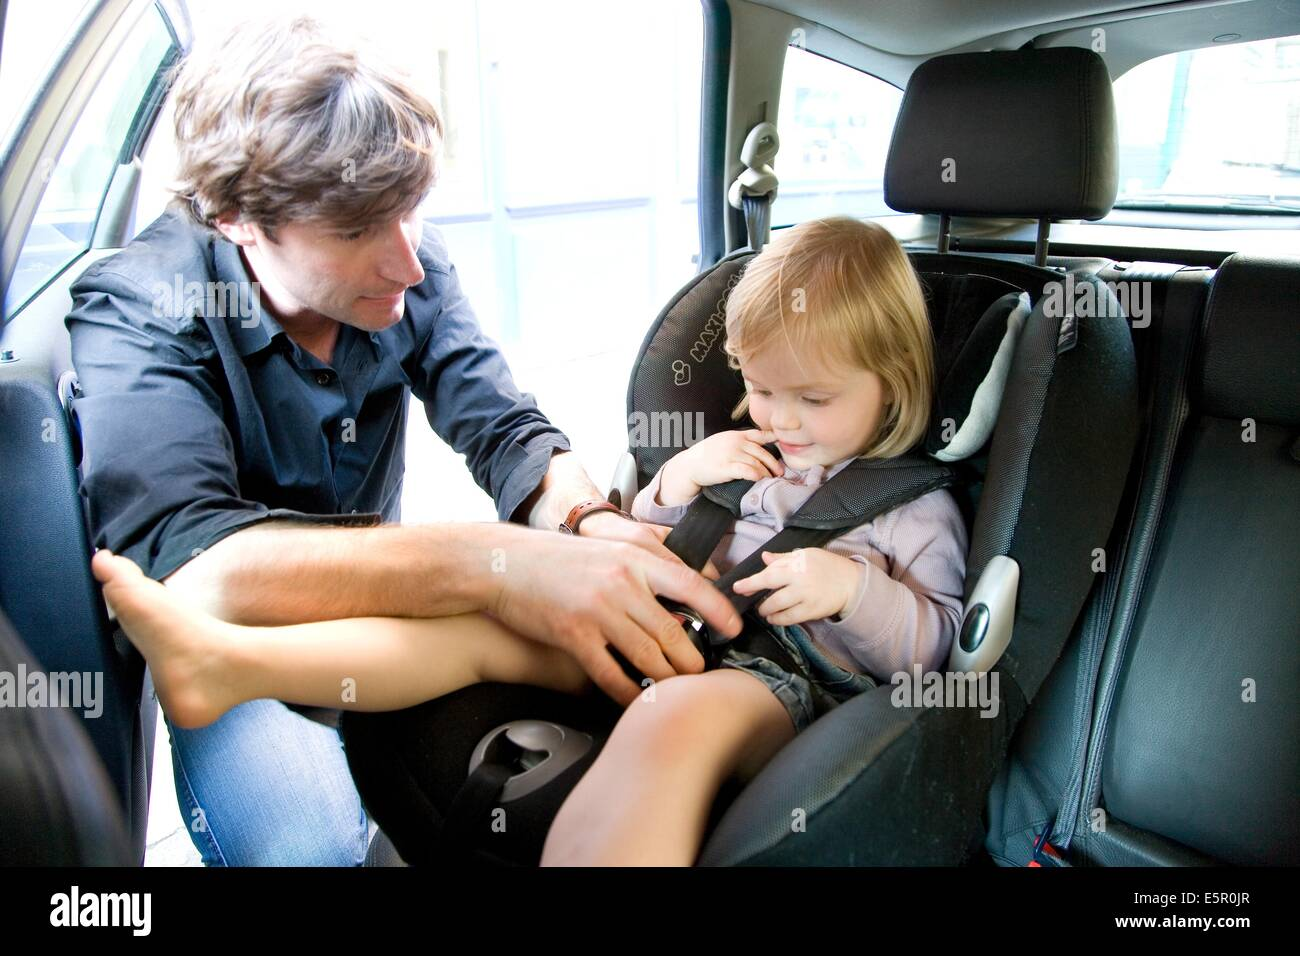 father securing his 2 year old baby girl in a baby car seat stock photo 72420175 alamy. Black Bedroom Furniture Sets. Home Design Ideas